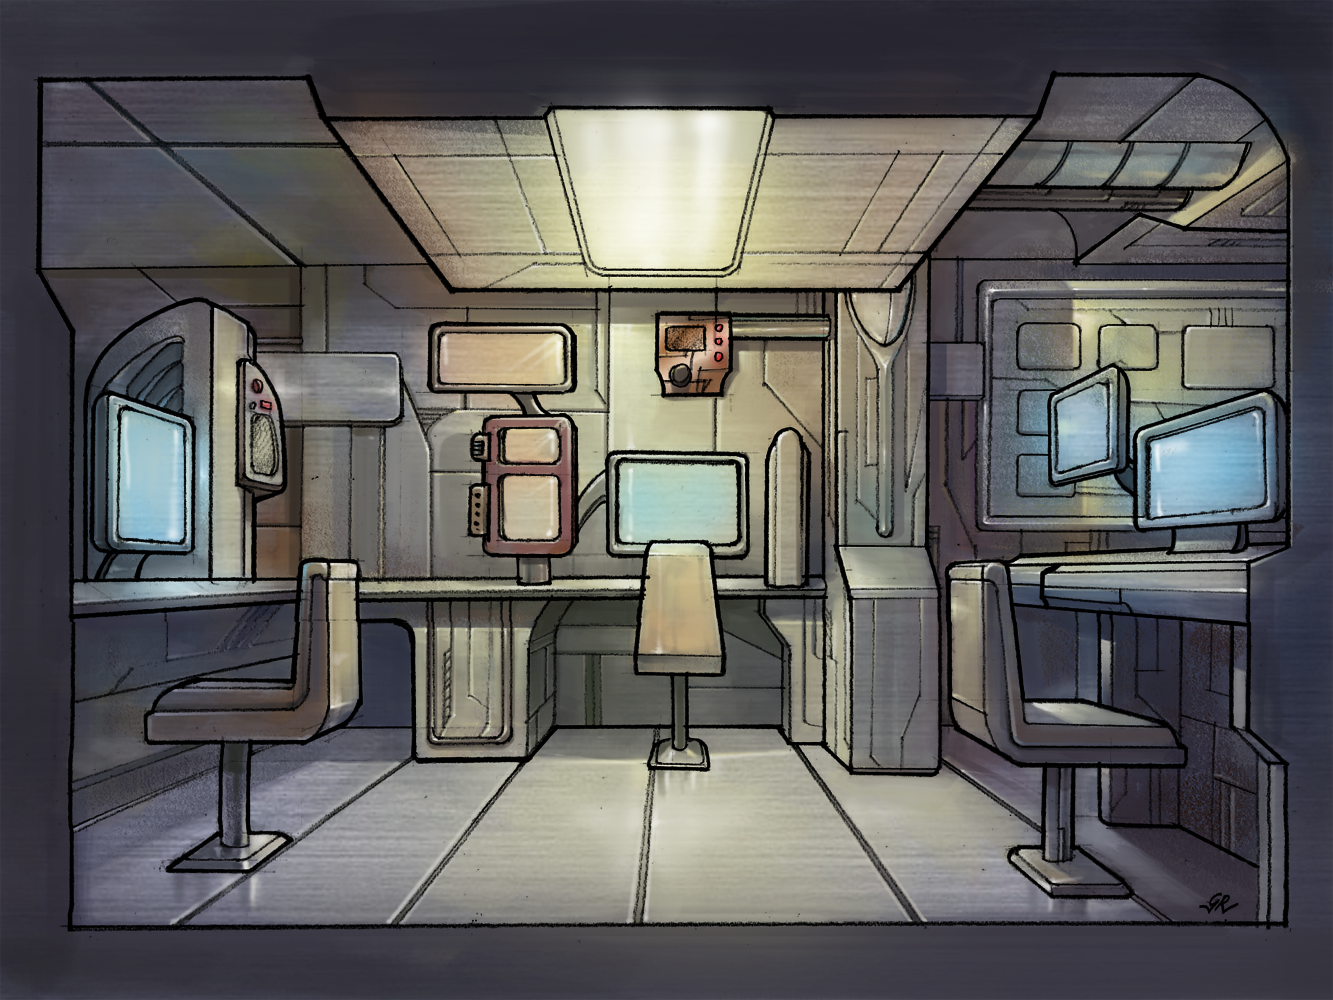 Computer Lab Wallpapers: The Black Wing Computer Lab By GleamingScythe On DeviantArt